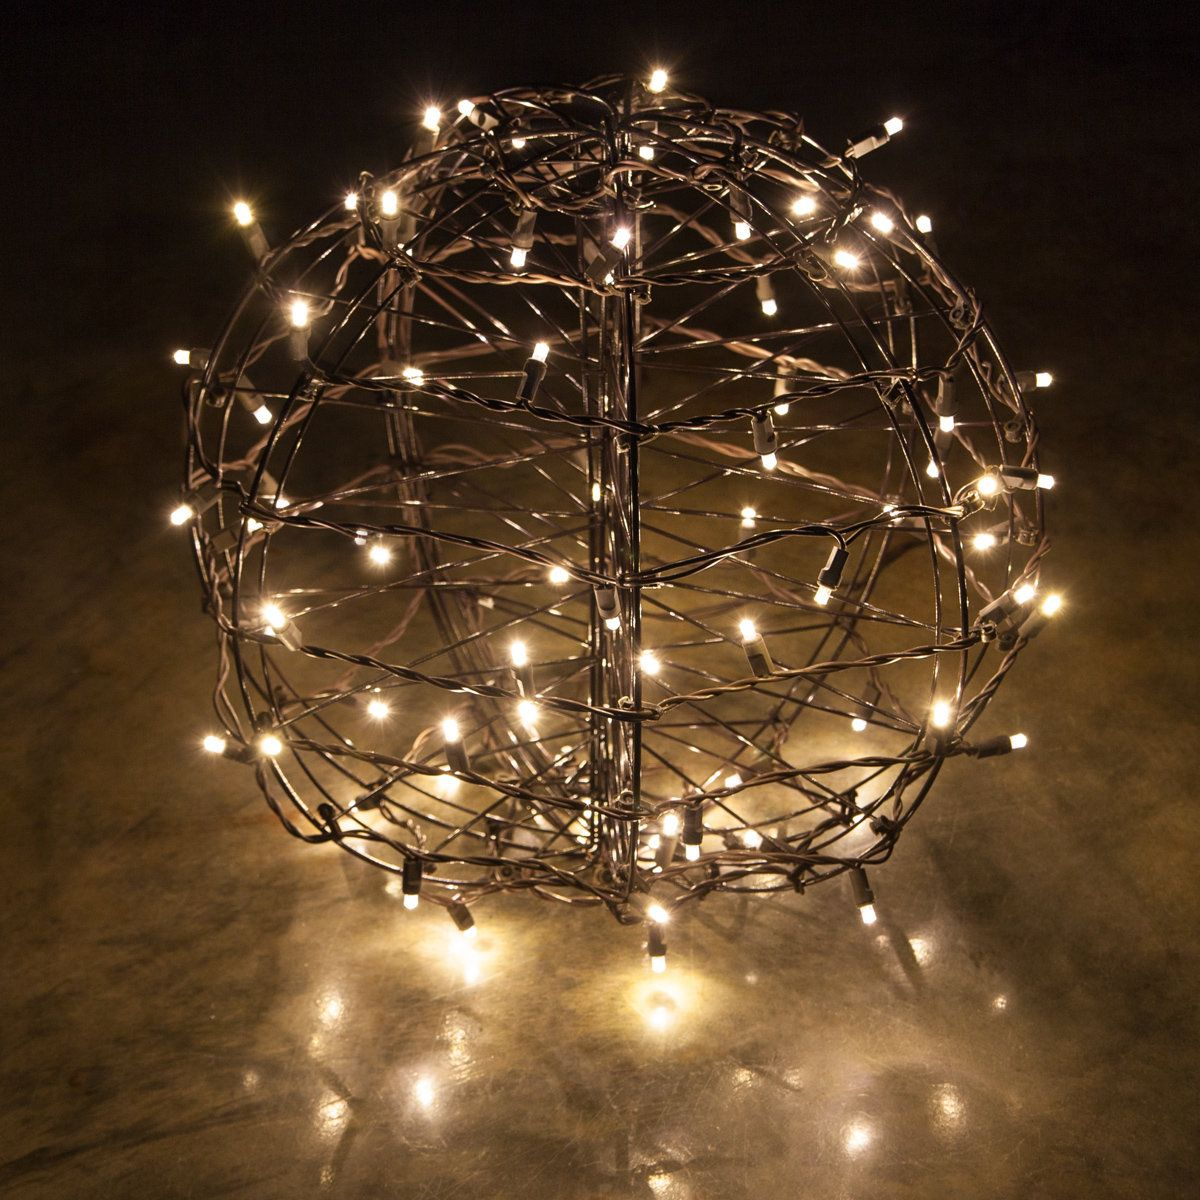 Lighted Party Sphere Warm White Led Yard Envy Hanging Christmas Lights Ball Lights Led Christmas Lights